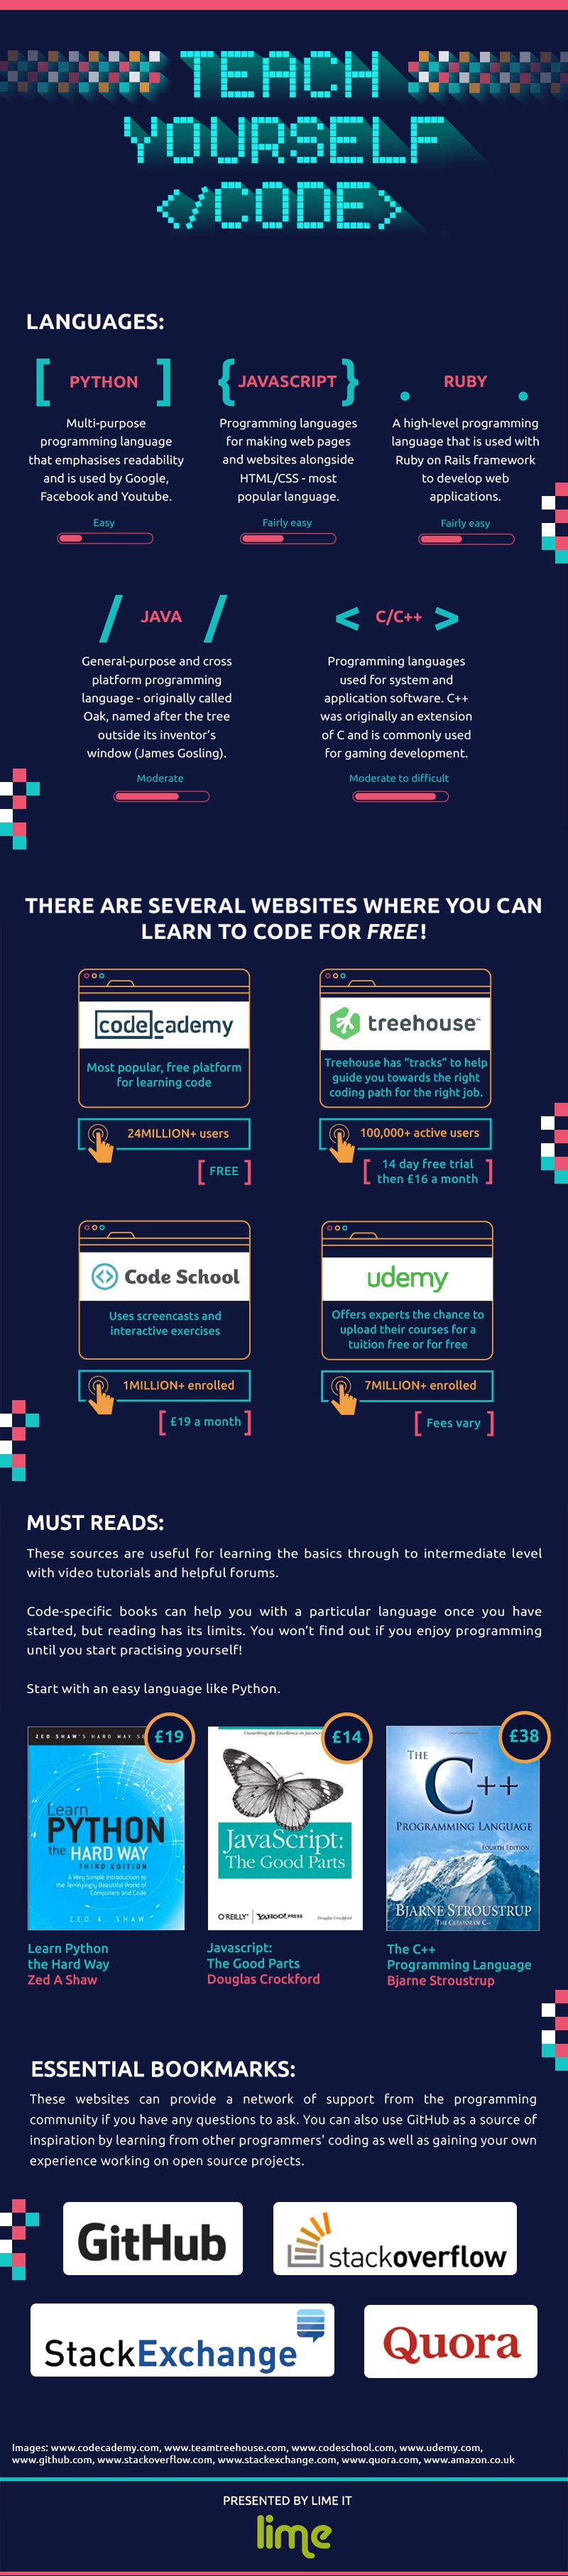 How to teach yourself code infographic http how to teach yourself code infographic httpelearninginfographicsteach yourself code fandeluxe Images